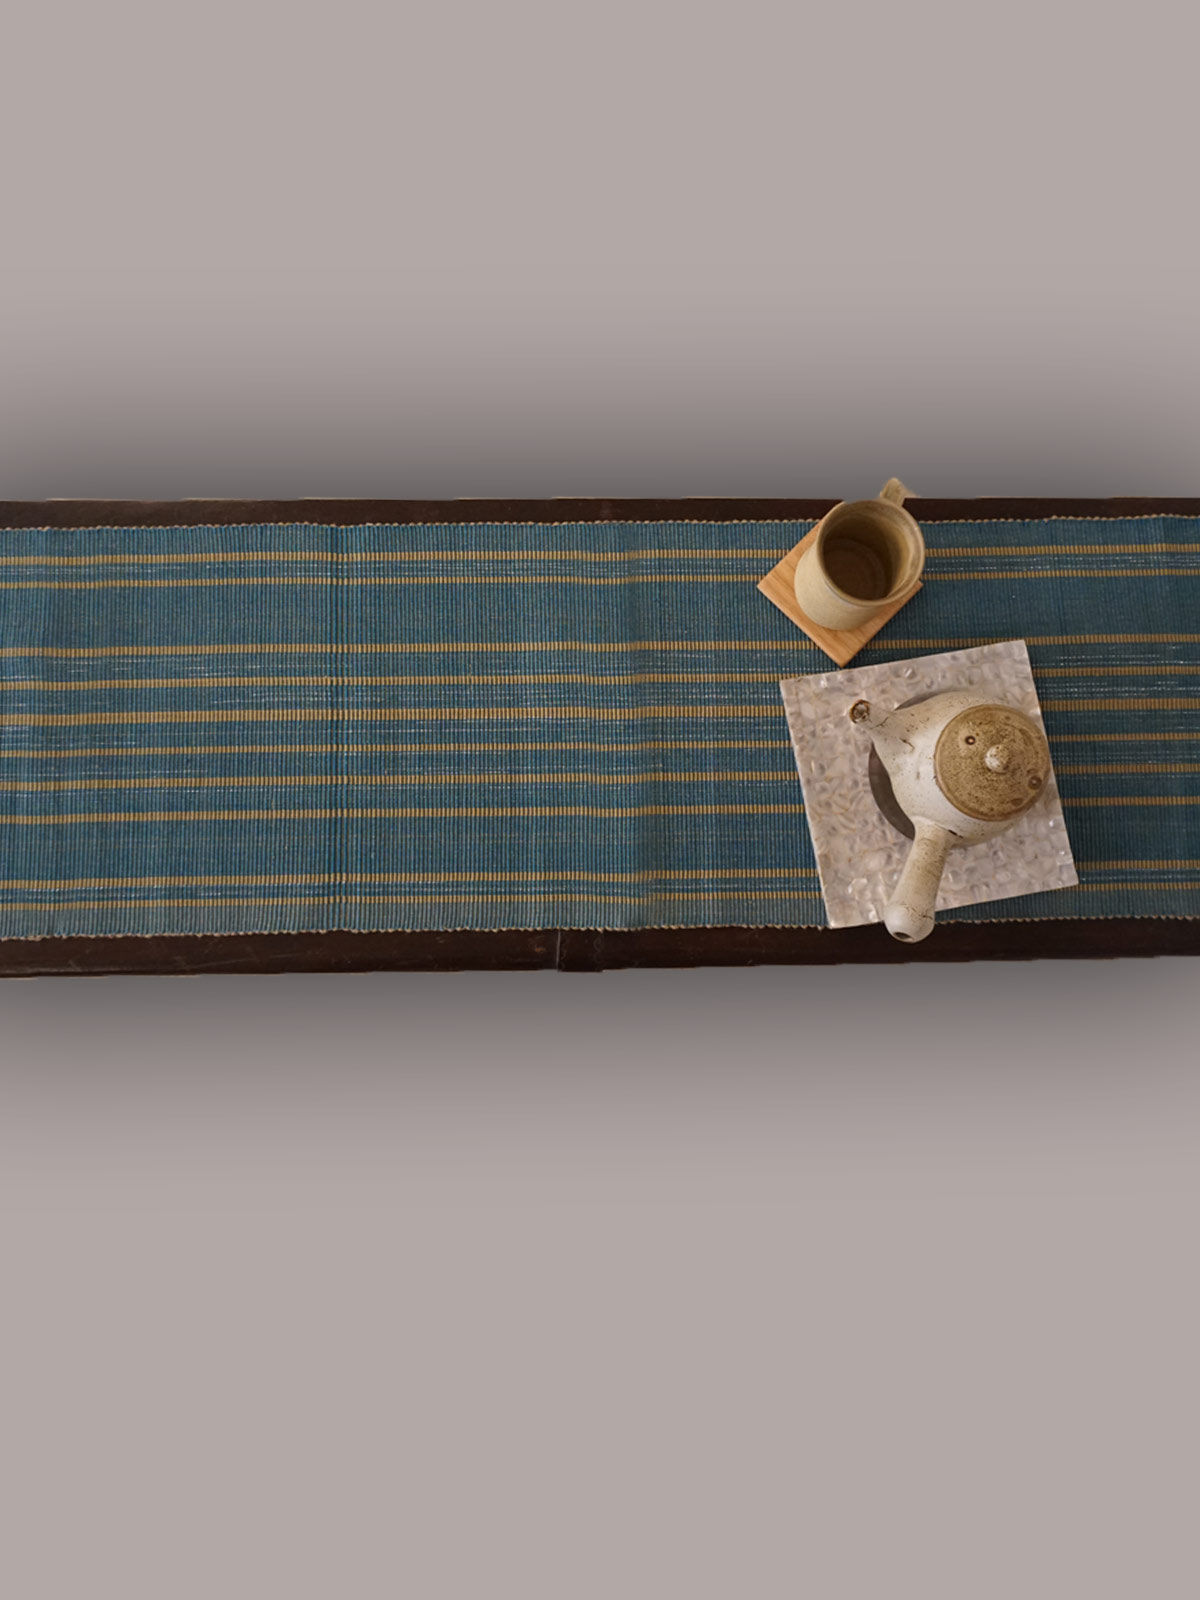 Indian August firozi  ribbed cotton table runner